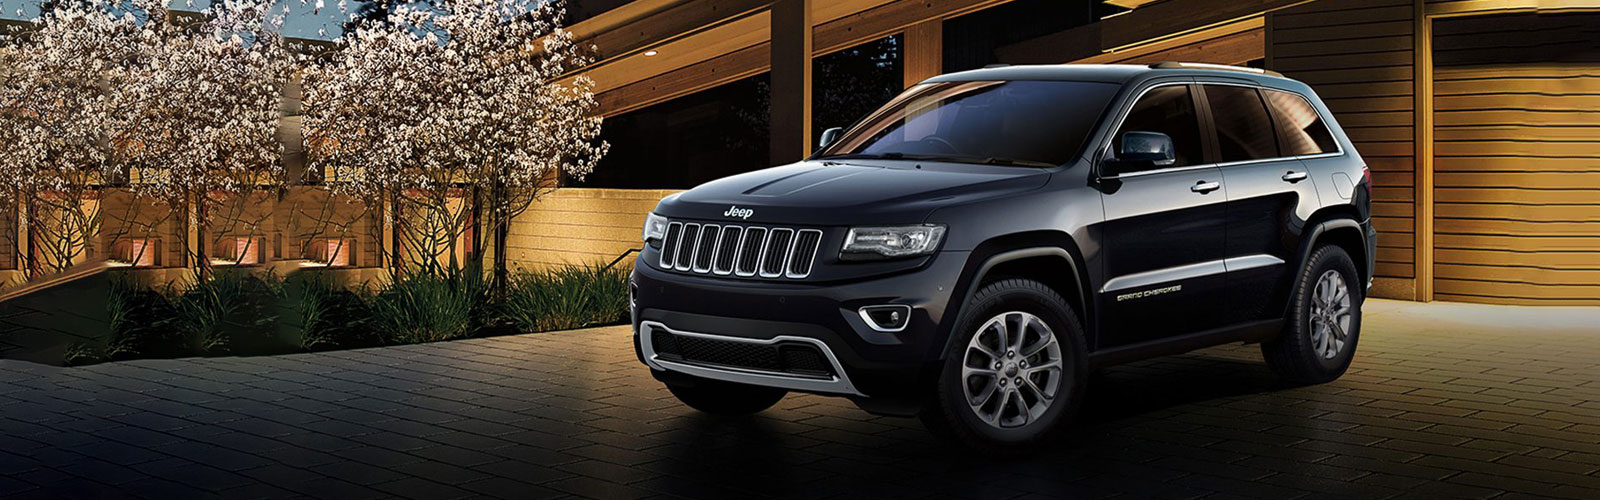 Grand Cherokee On-Road Price in Bangalore - PPS Jeep